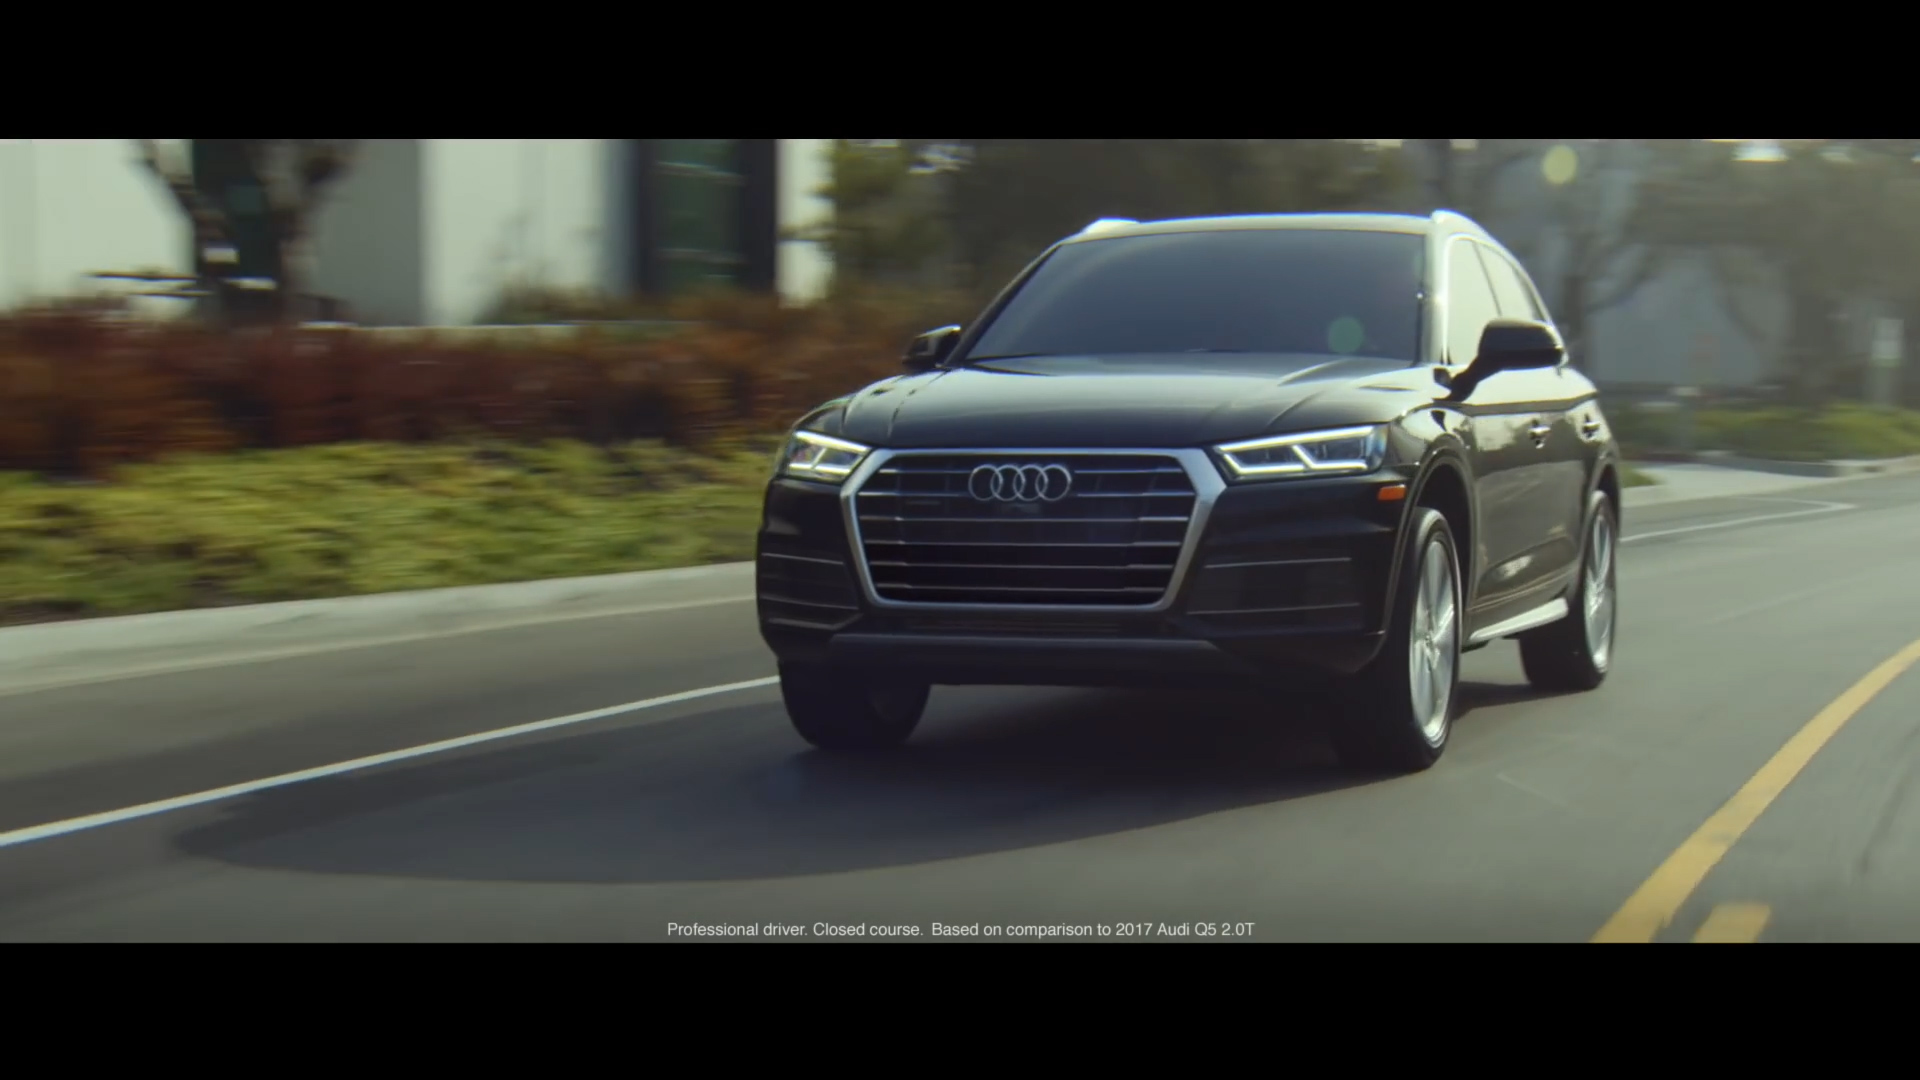 The Interview - Audi Q5